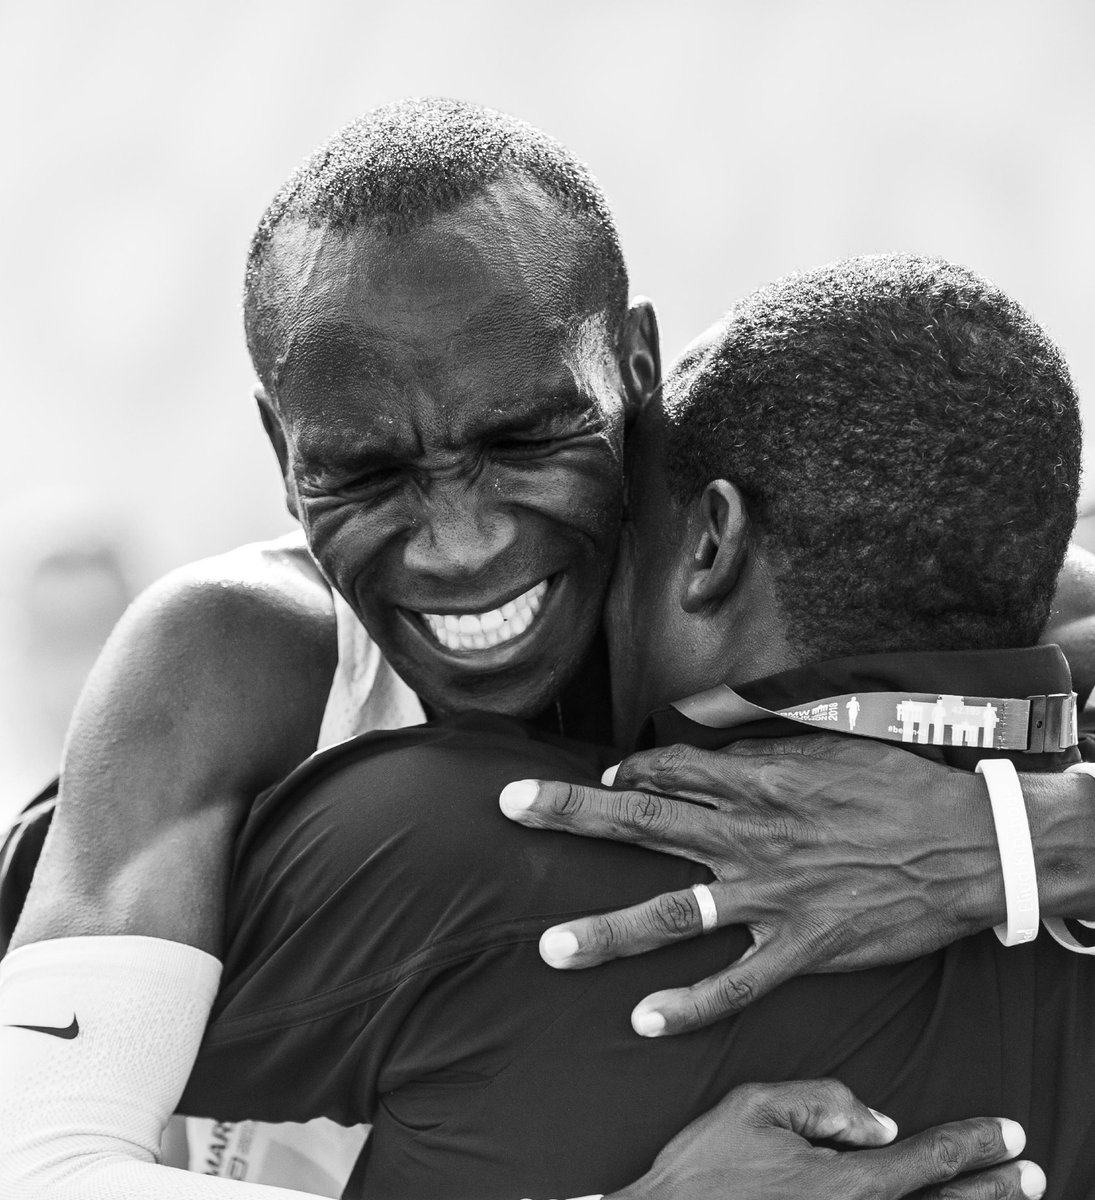 A very special moment with my coach Patrick Sang after our world record in Berlin one month ago.